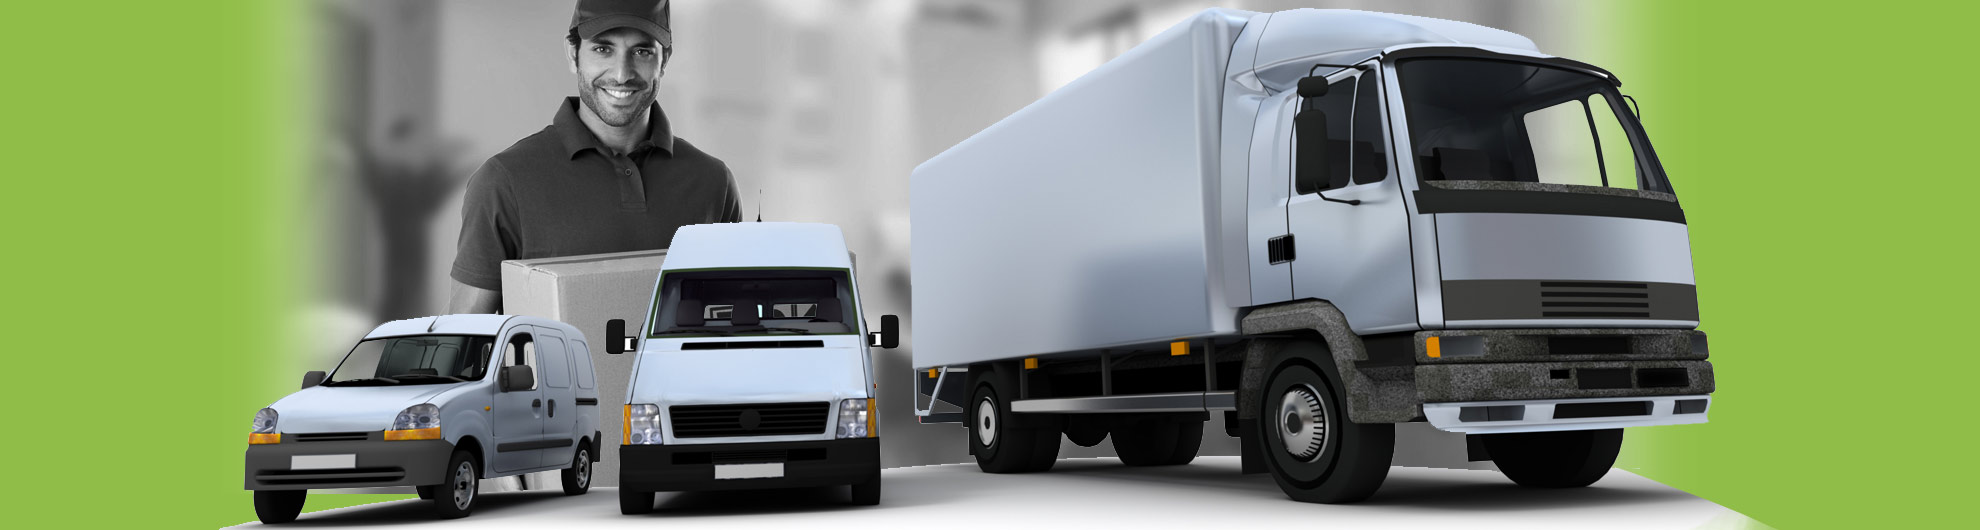 Wexford  International Movers - Shipping Companies